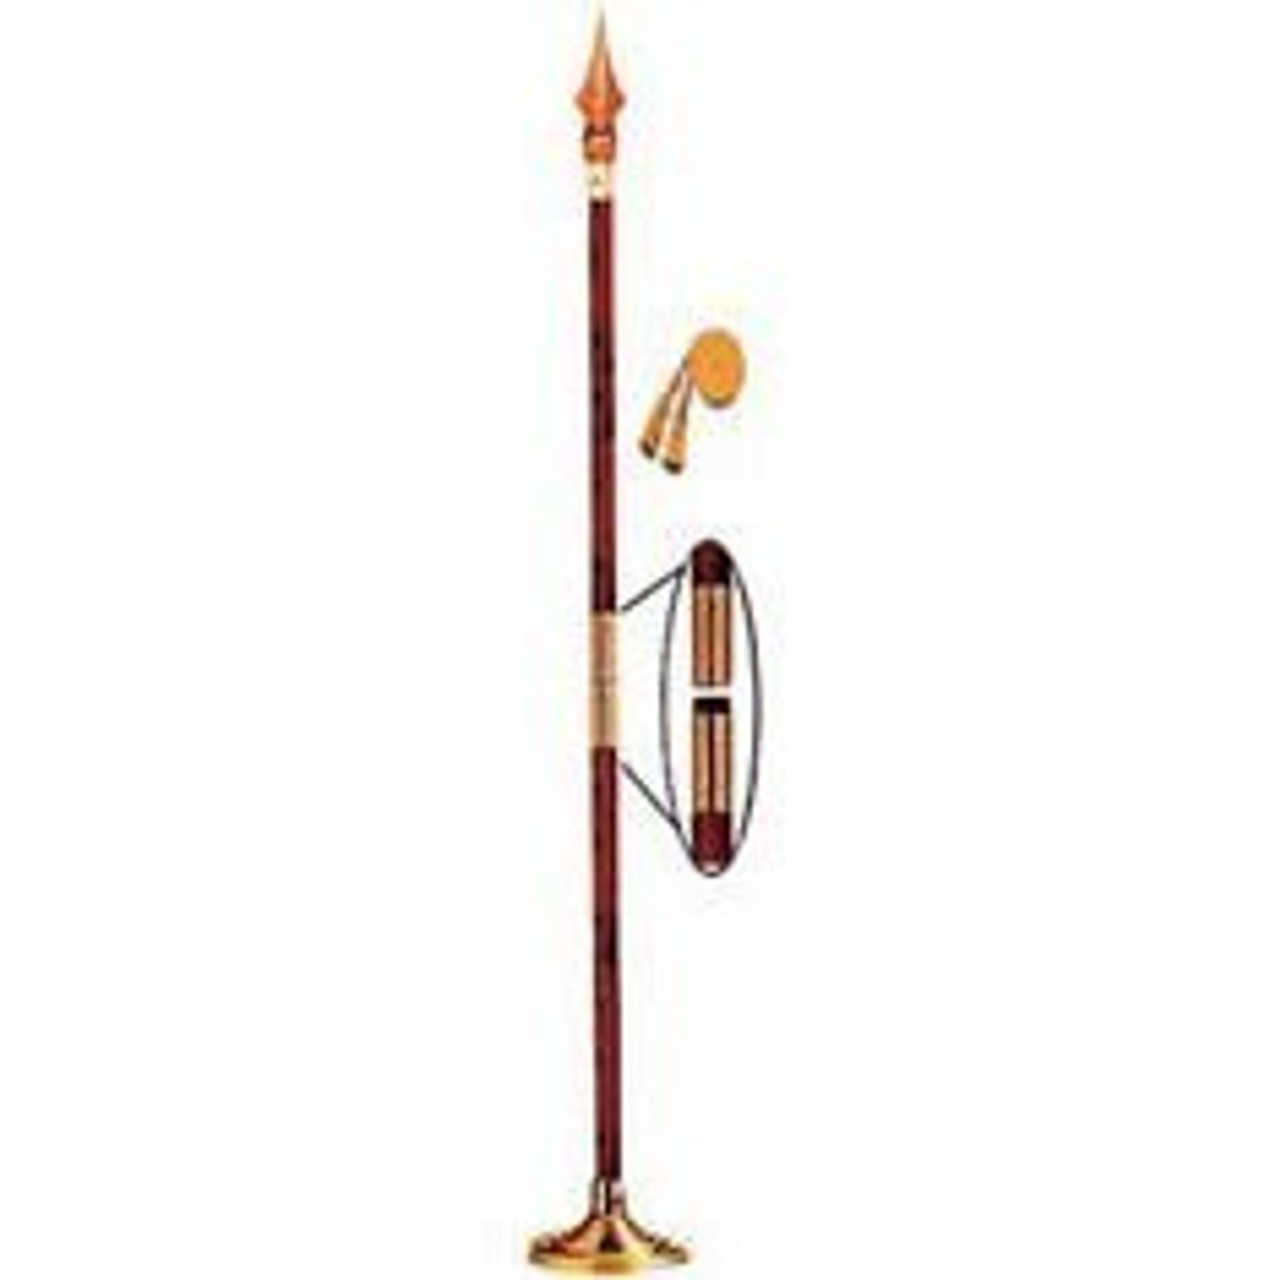 Indoor Display Pole w/ Fancy Spear